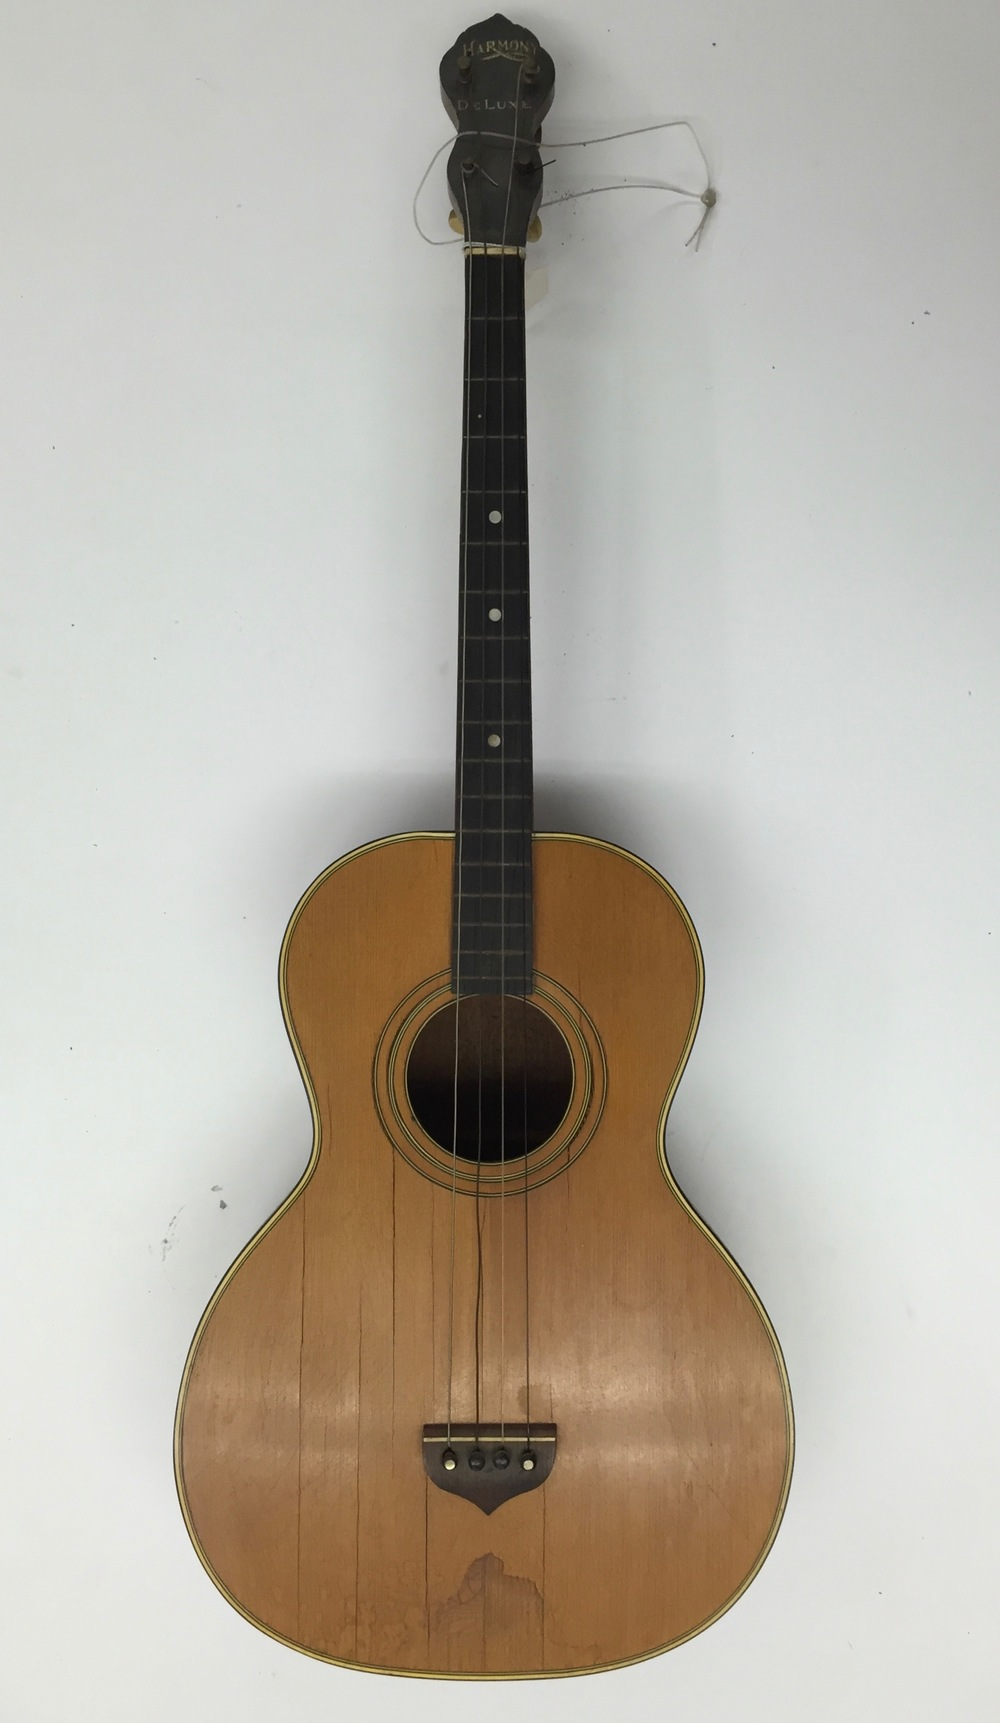 Harmony baritone mandolin, shaped like guitar, ca. 1920